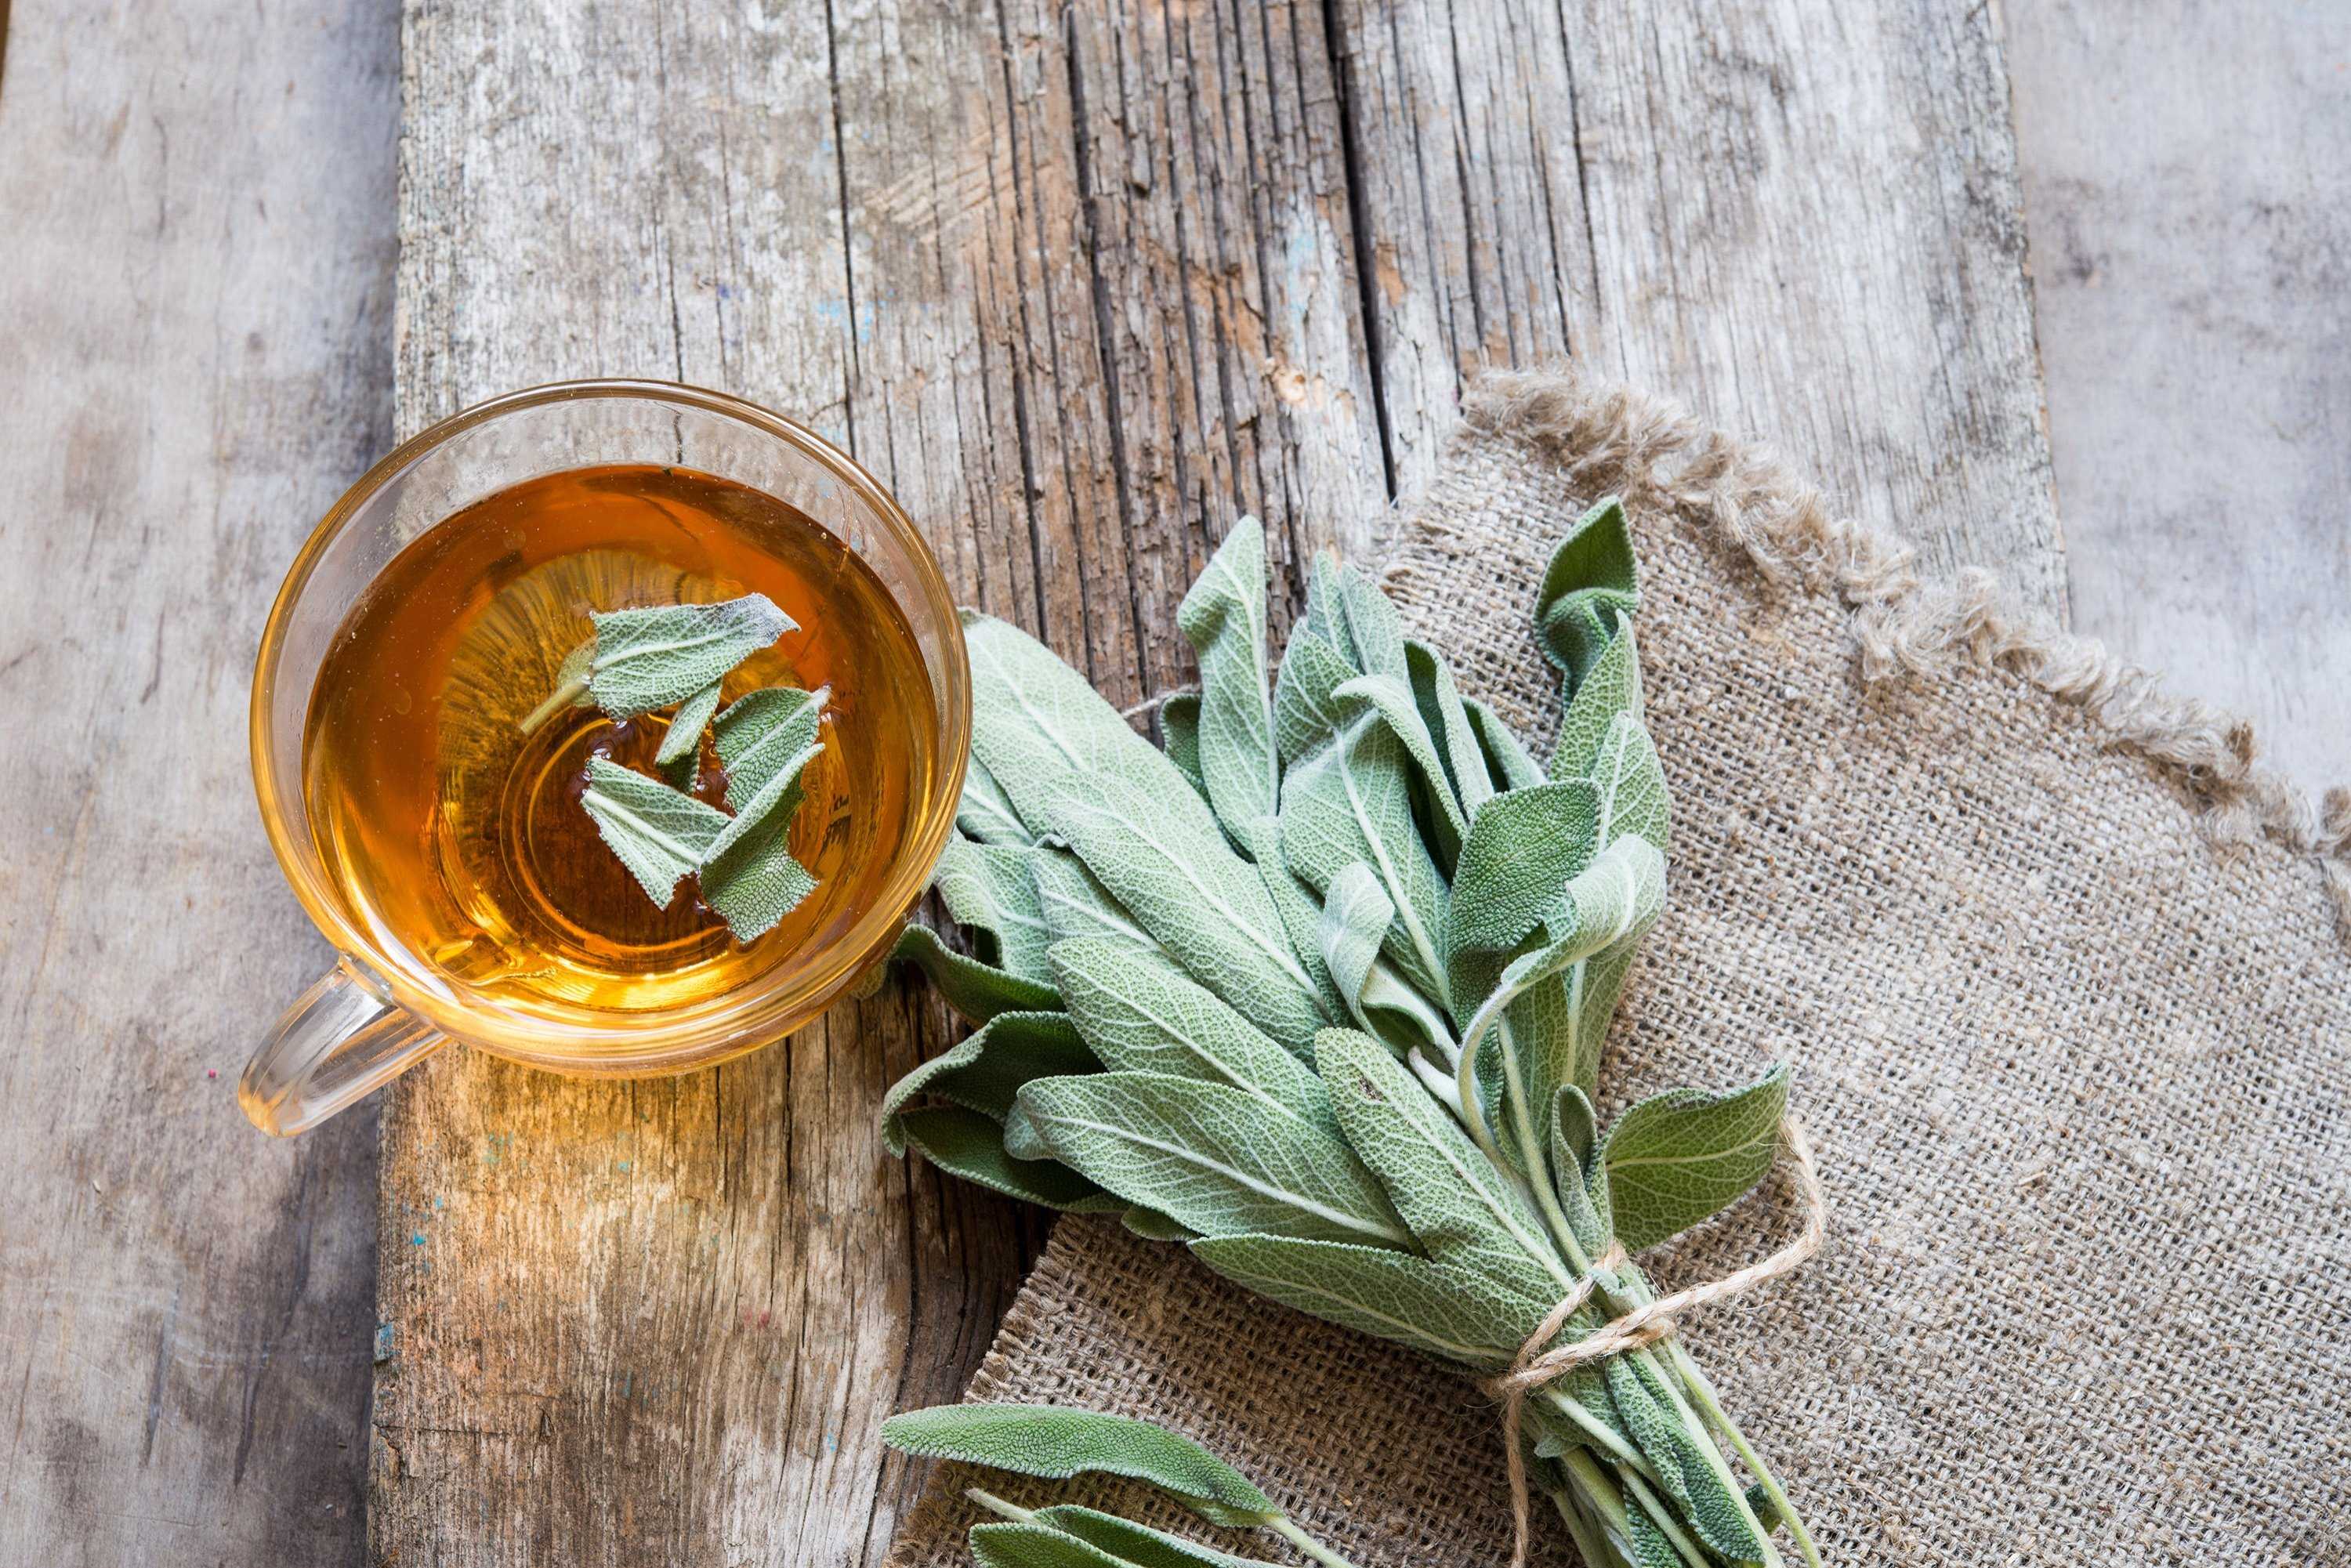 Sage is one of the most popular Mediterranean herbs and commonly consumed as tea in winter. (Shutterstock Photo)